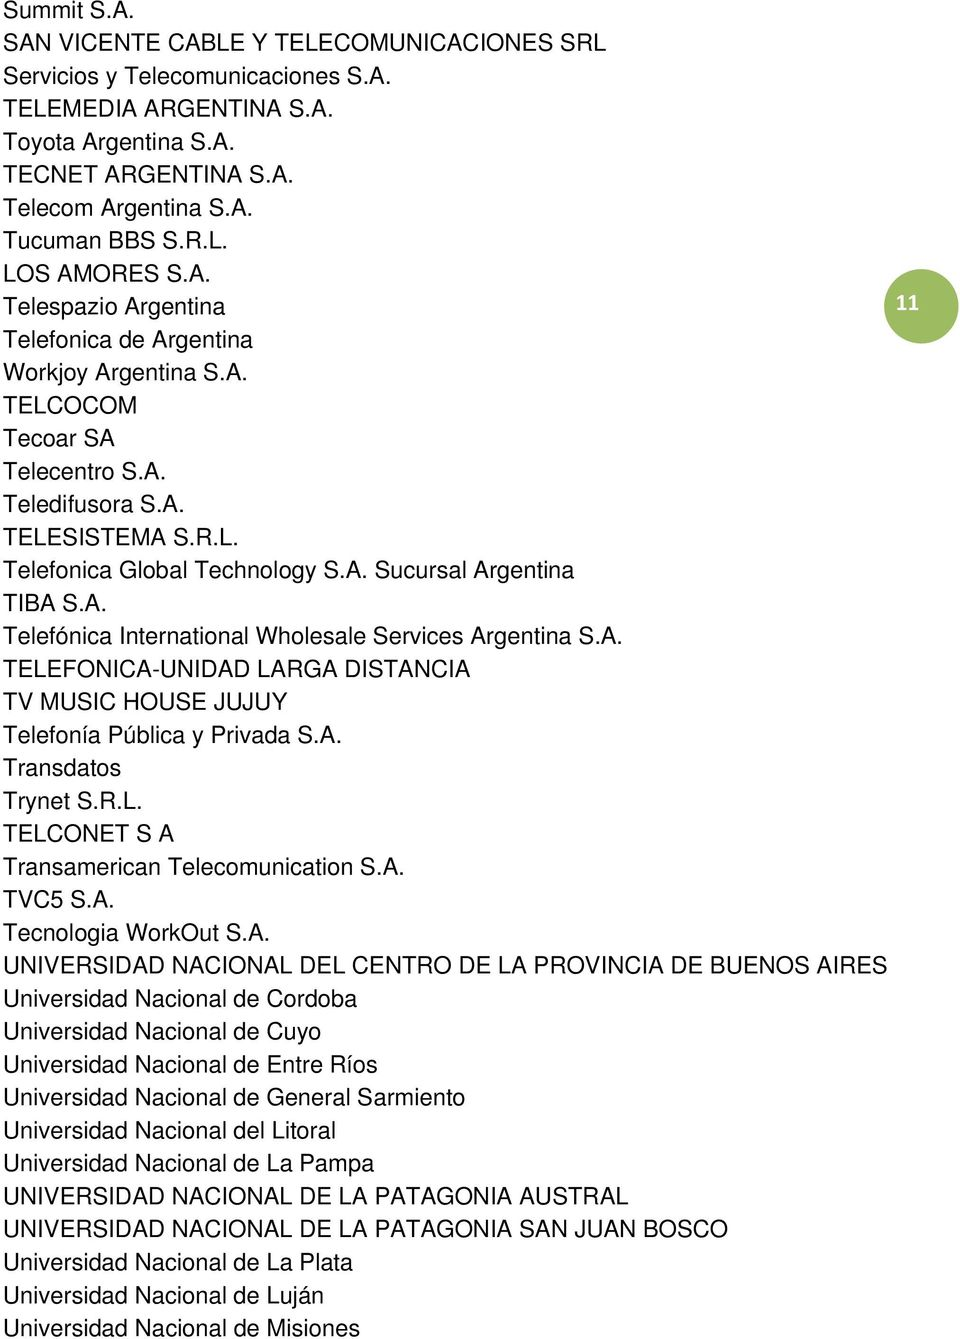 A. Telefónica International Wholesale Services Argentina S.A. TELEFONICA-UNIDAD LARGA DISTANCIA TV MUSIC HOUSE JUJUY Telefonía Pública y Privada S.A. Transdatos Trynet S.R.L. TELCONET S A Transamerican Telecomunication S.